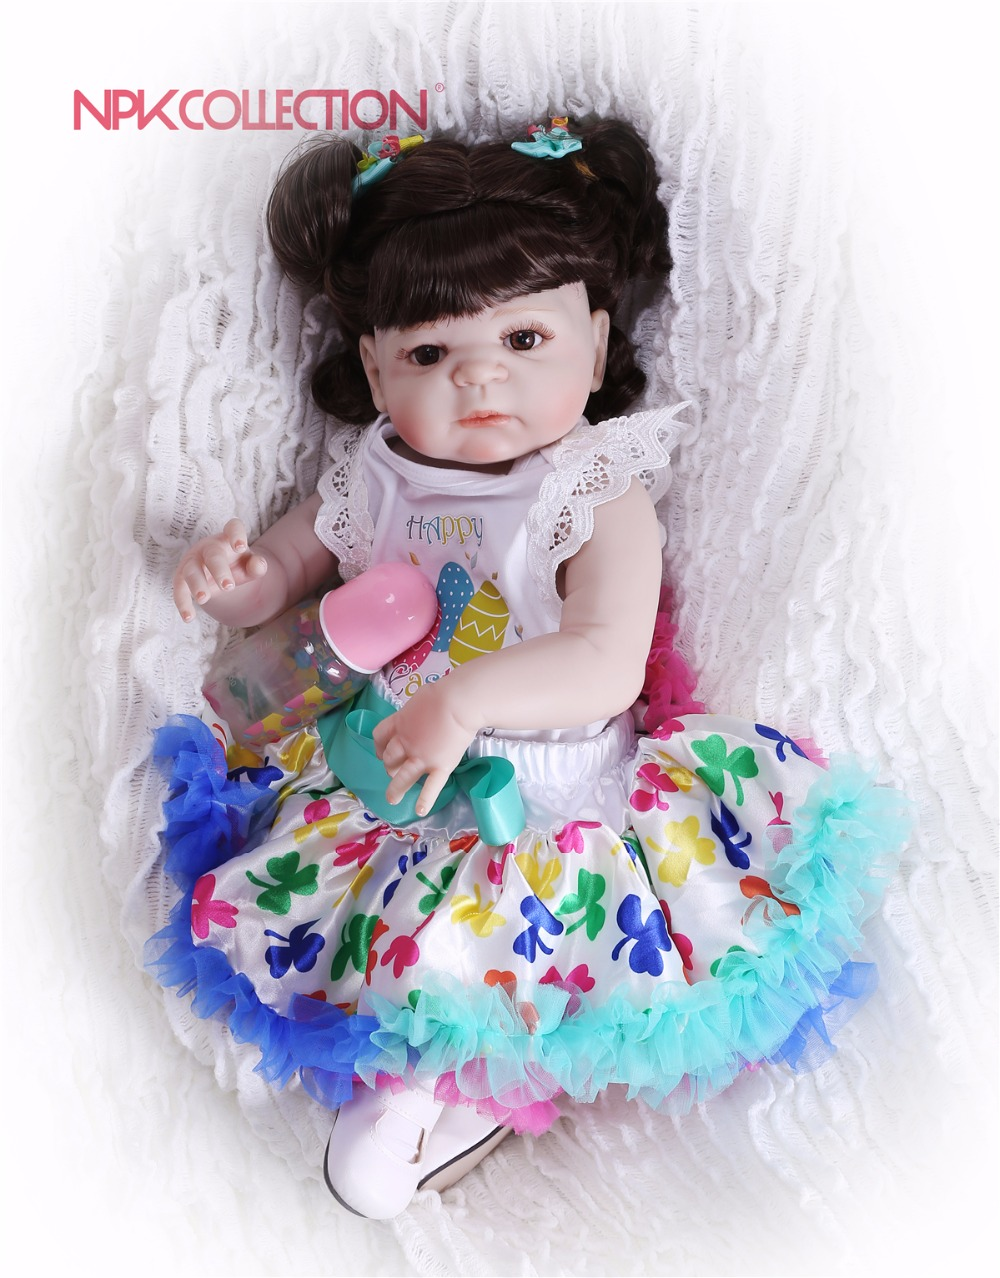 NPKCOLLECTION New Hairstyle Girl Doll Full Silicone Body Lifelike Bebes Reborn Princess Girl Doll Handmade Baby Toy Xmas GiftsNPKCOLLECTION New Hairstyle Girl Doll Full Silicone Body Lifelike Bebes Reborn Princess Girl Doll Handmade Baby Toy Xmas Gifts